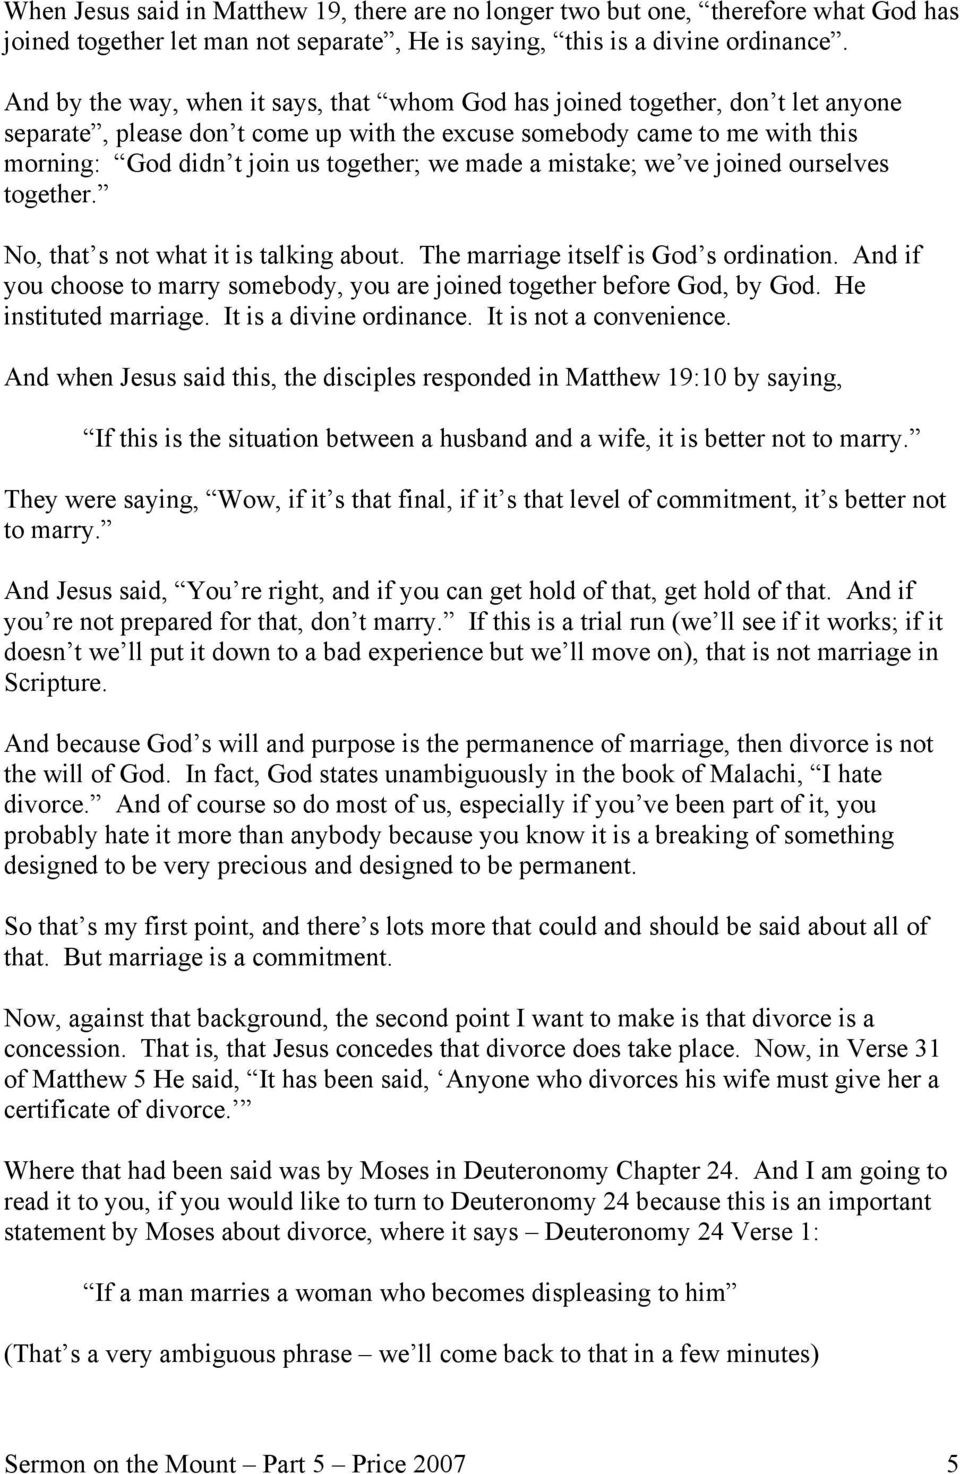 Sermon on the Mount Part 5 The Christian and Divorce Pastor Charles